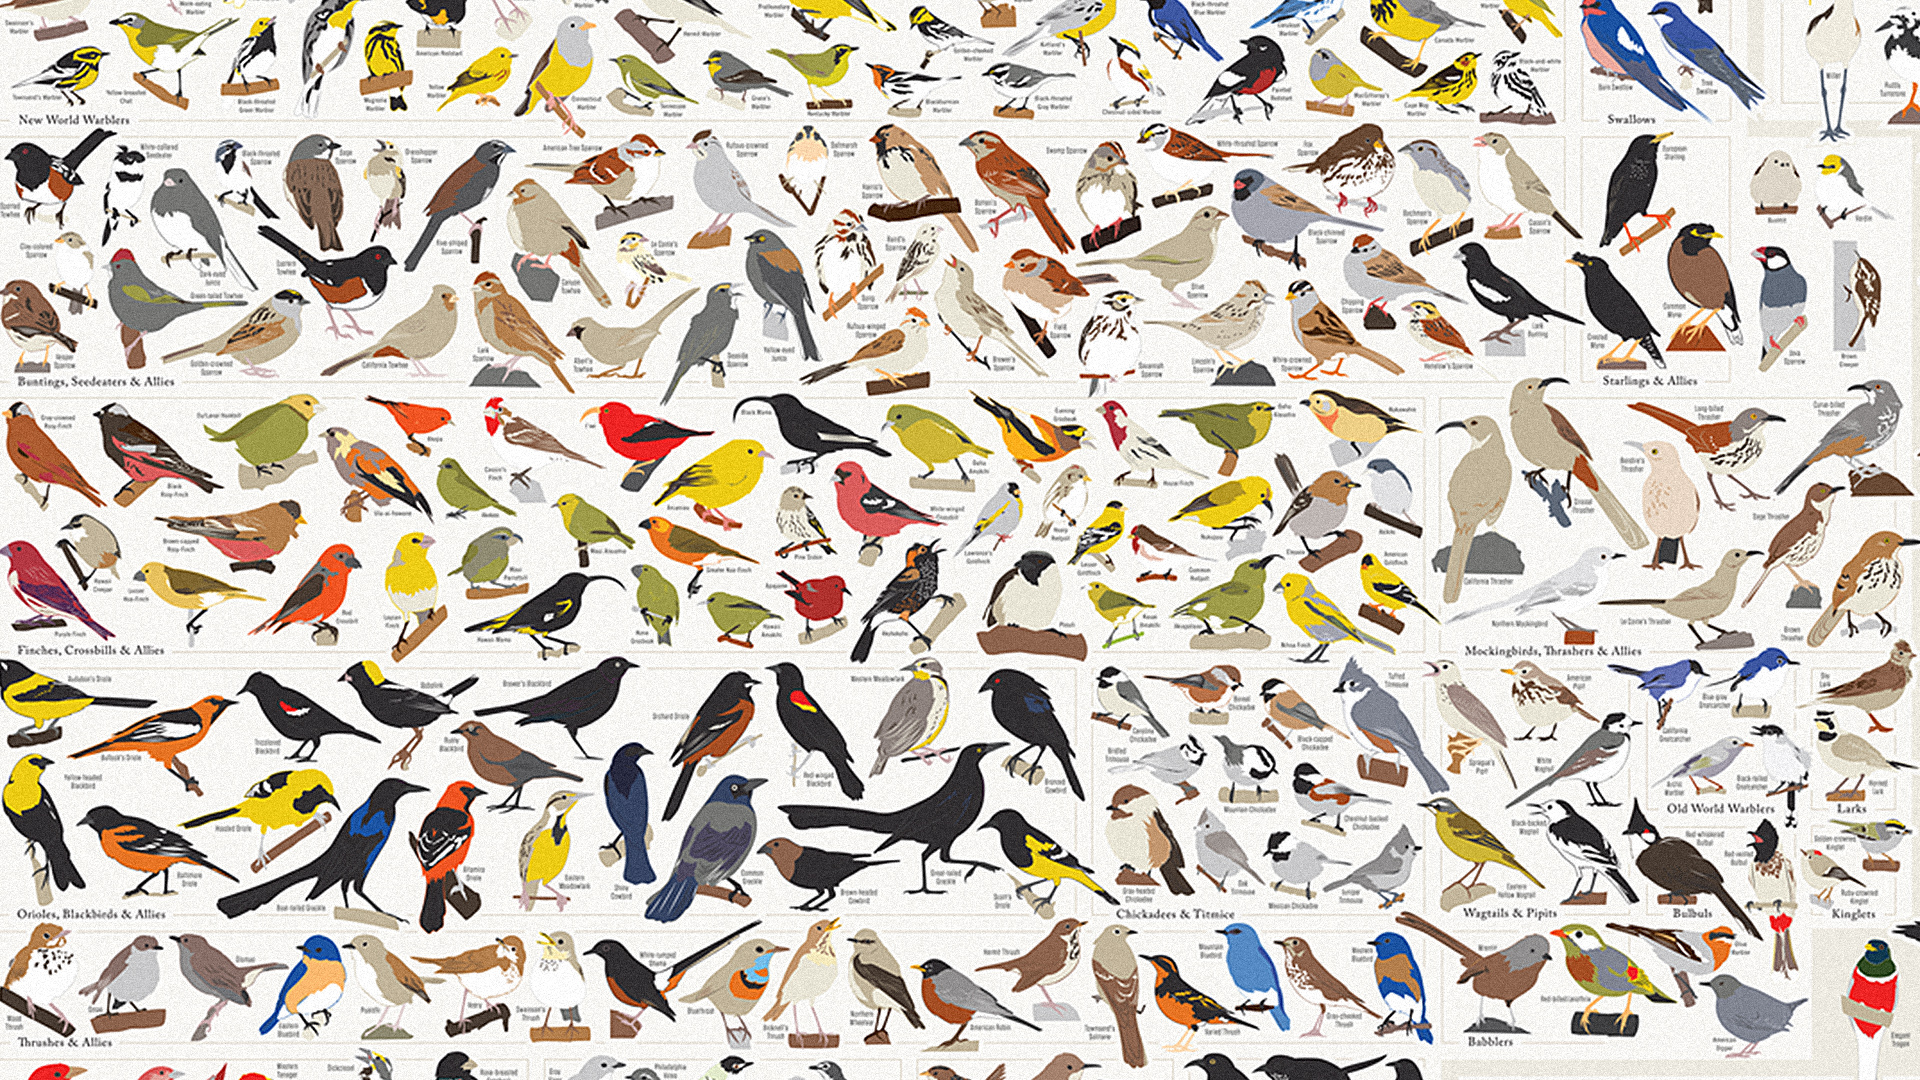 Infographic: 730 North American Birds In A Single Chart